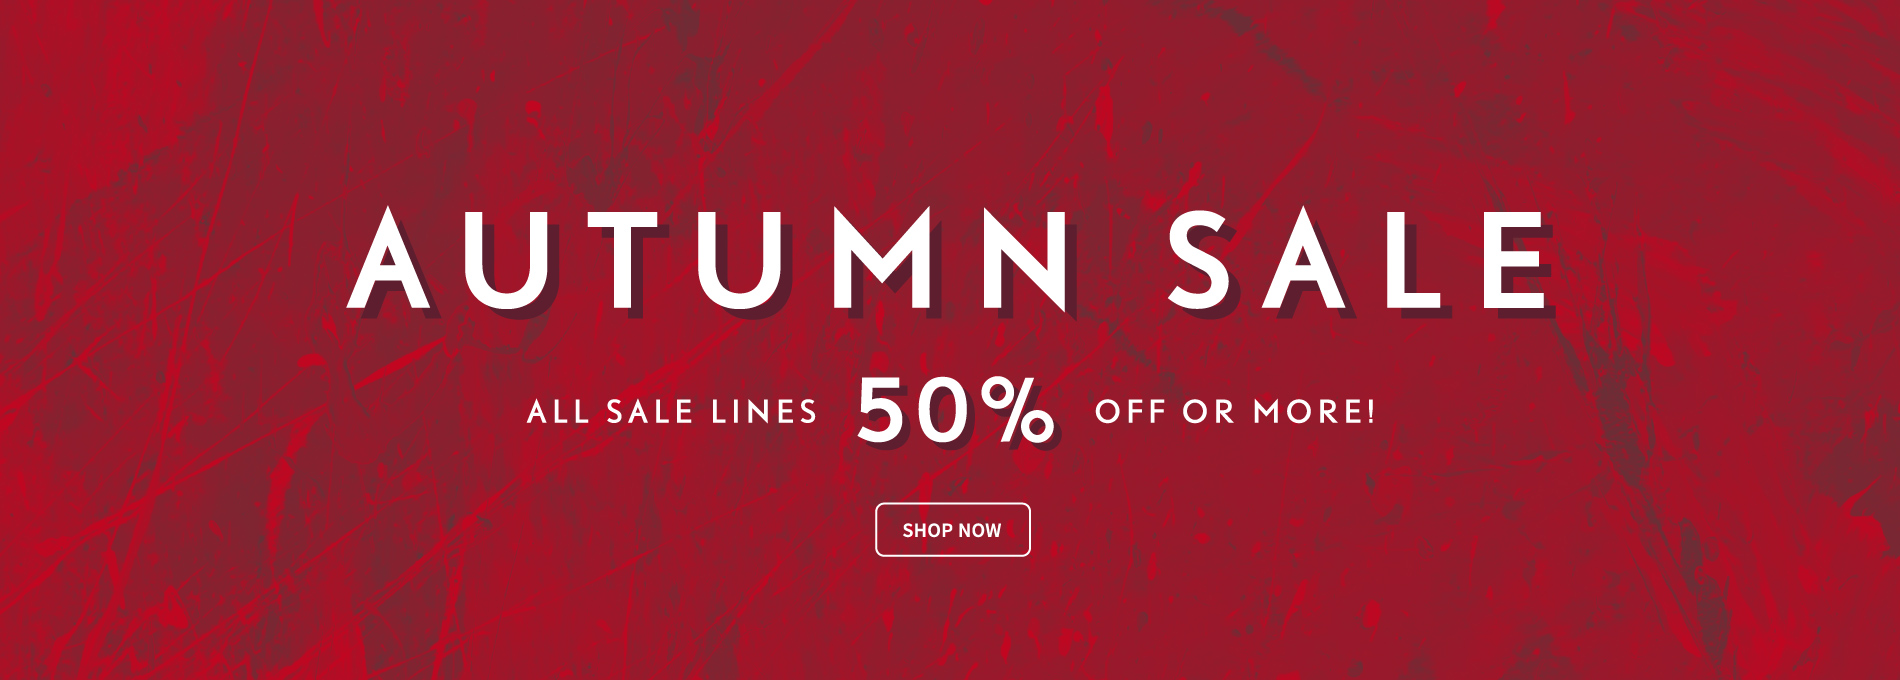 Suit Direct: Autumn Sale 50% off or more